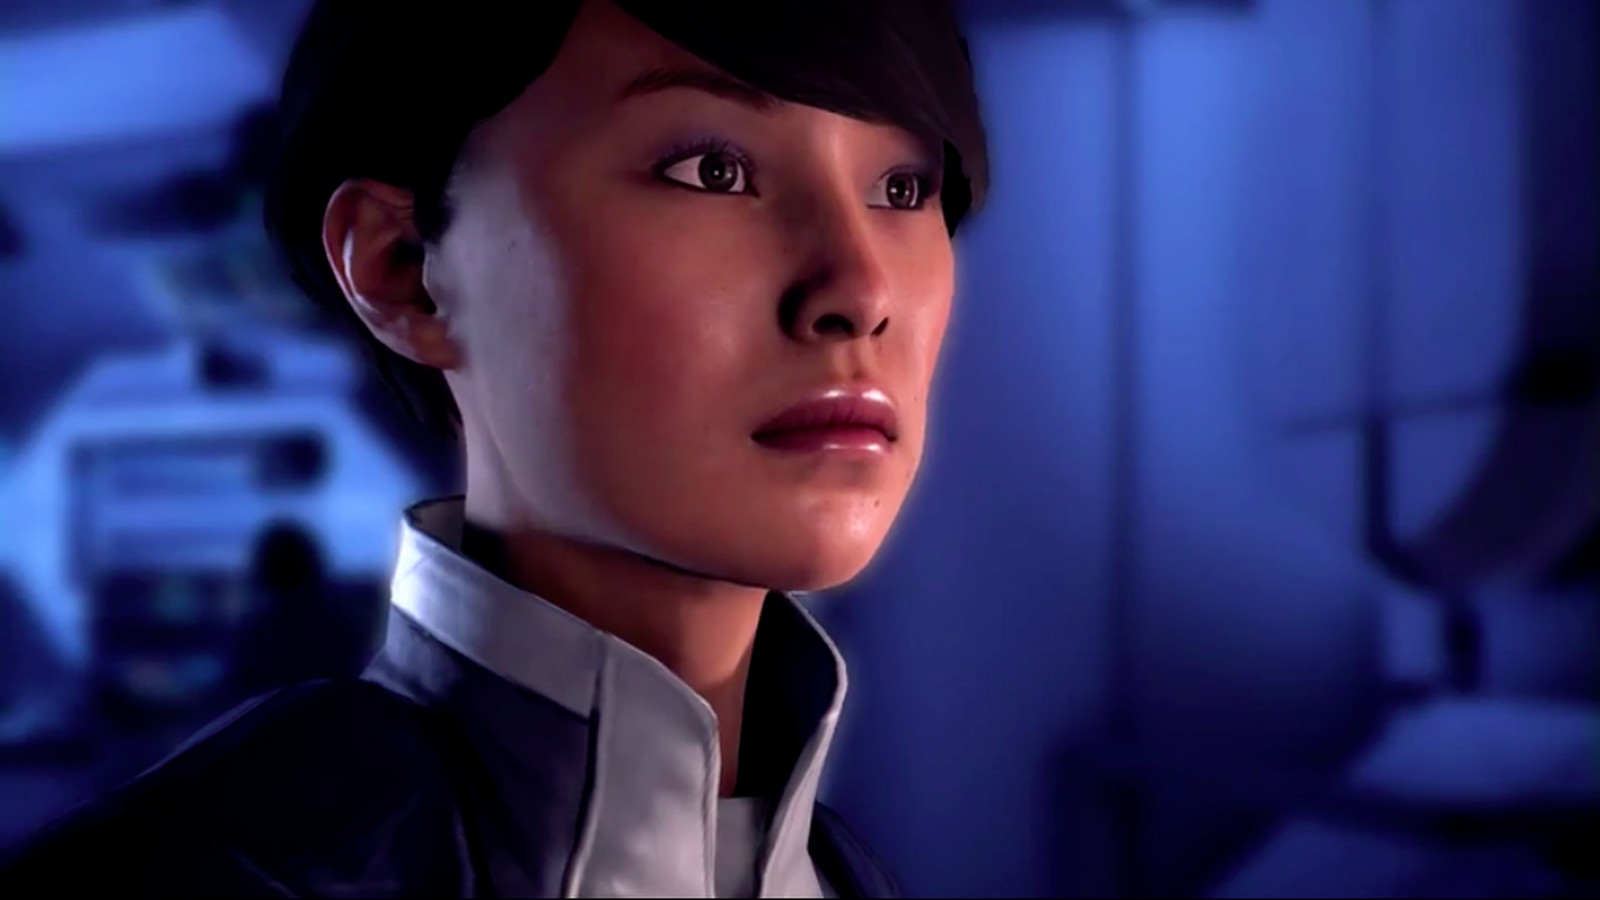 Mass Effect: Andromeda's improved eyes make a big difference